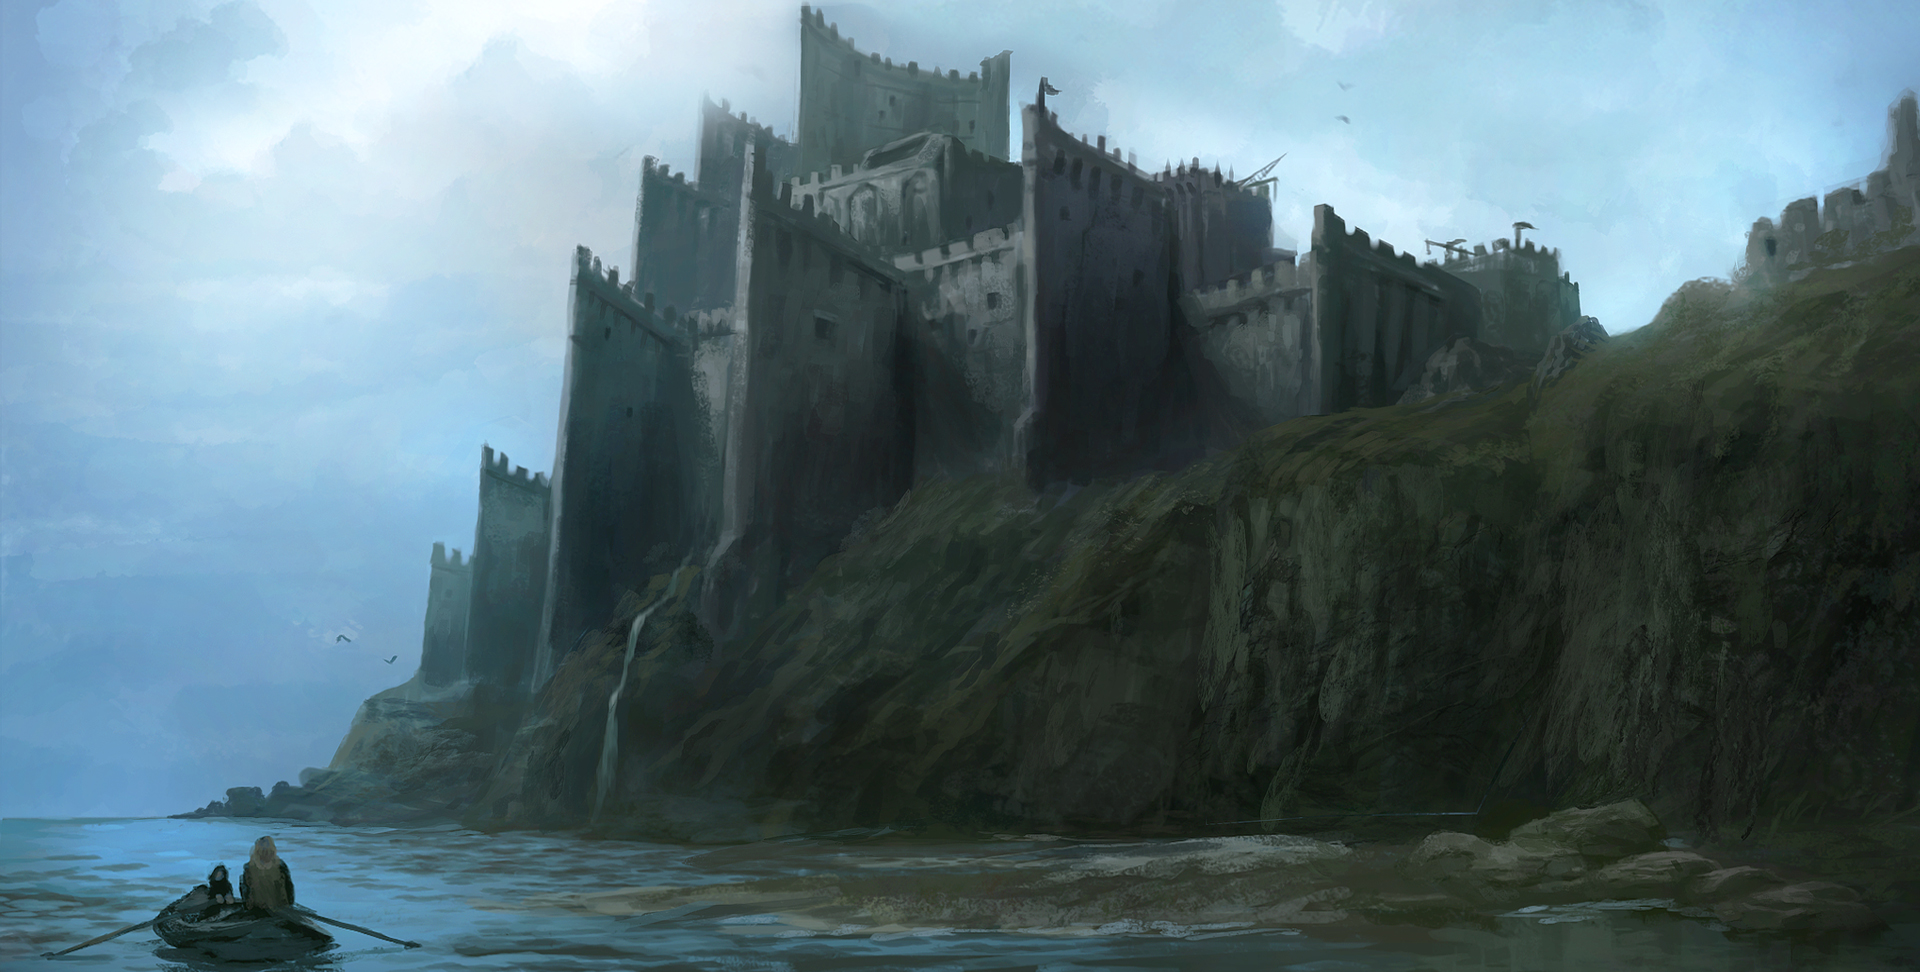 Game of Thrones tour by boat